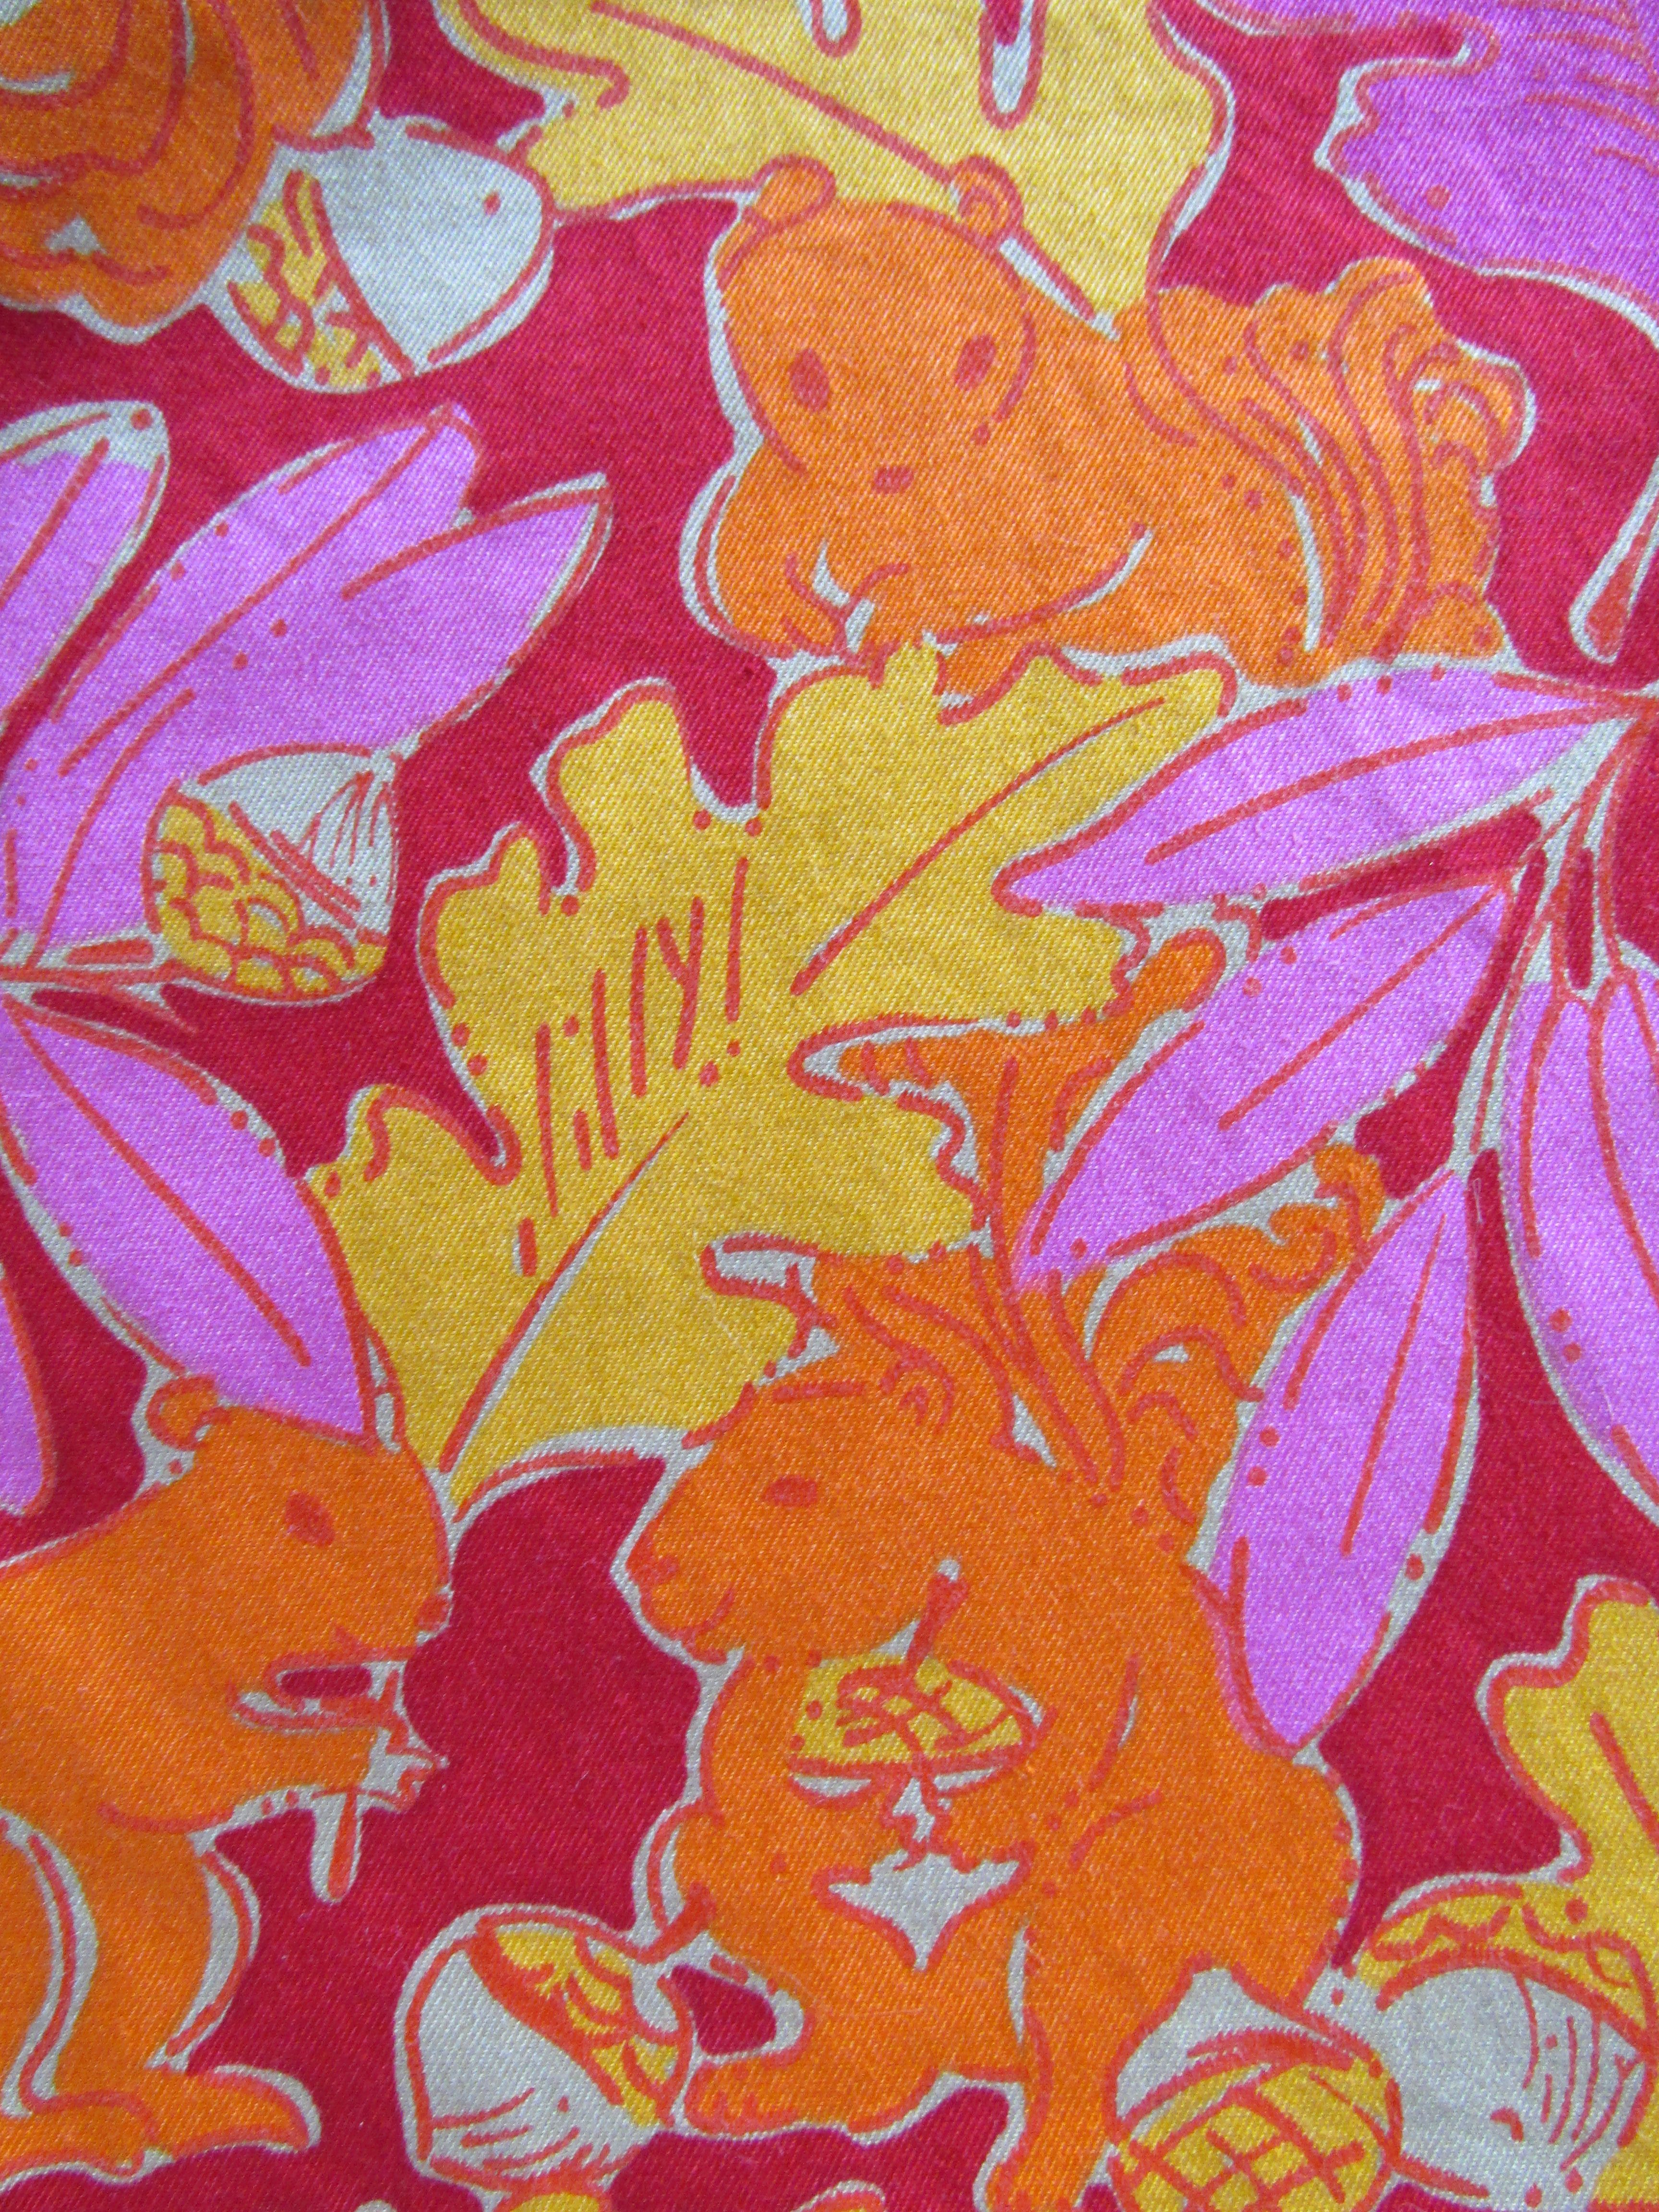 b5e4be2536e259 Lilly Pulitzer kids leaves and squirrels print from late 90s/early 2000s.  Happy Fall!!!